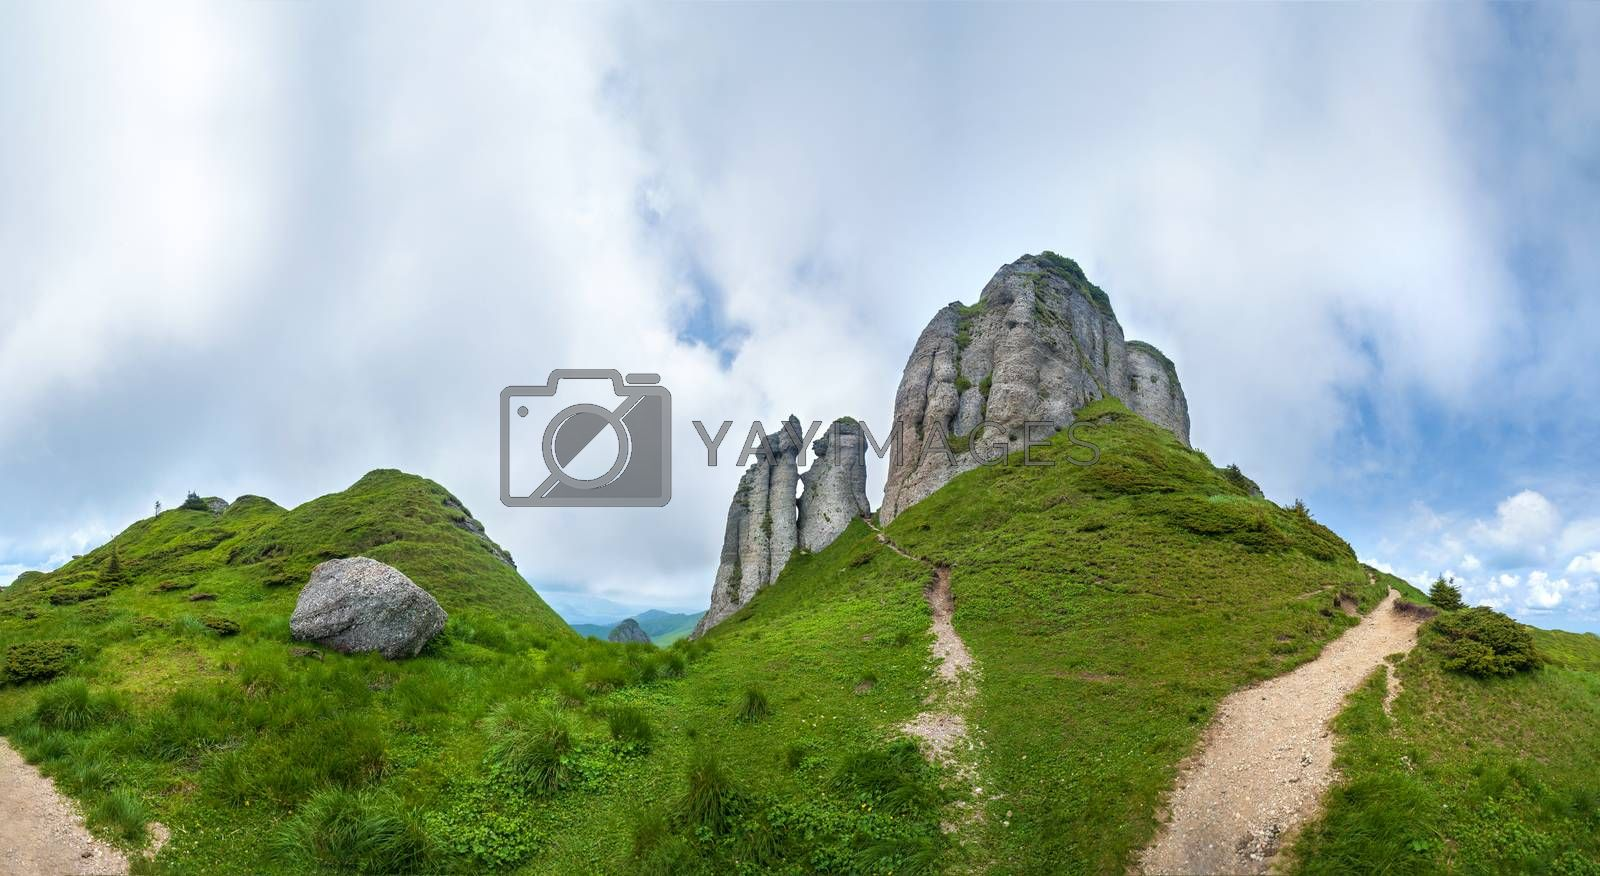 Panoramic view of Mount Ciucas on summer with rock formations, part of the Carpathian Range from Romania